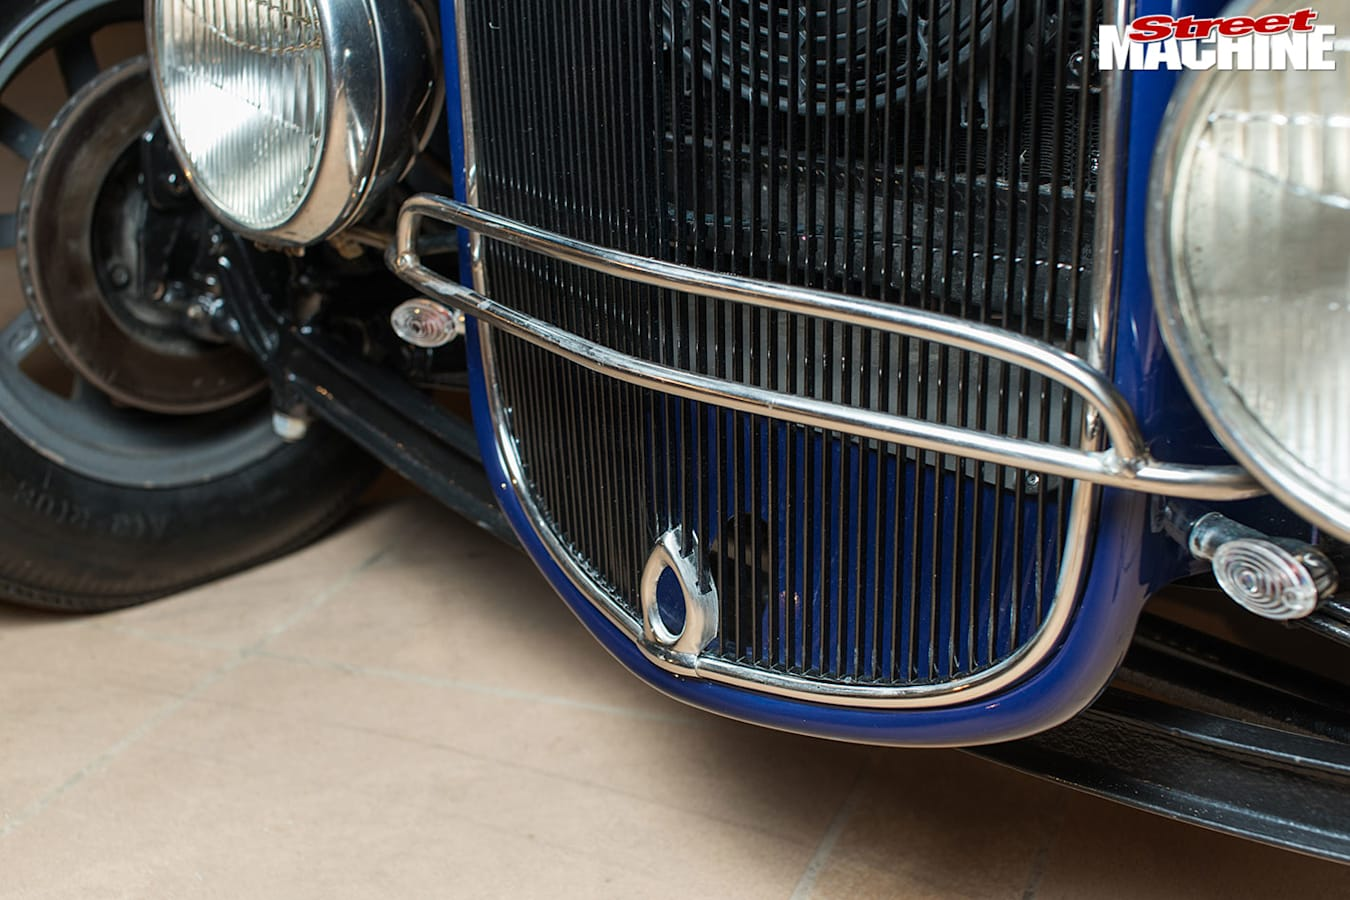 Ford Model A grille